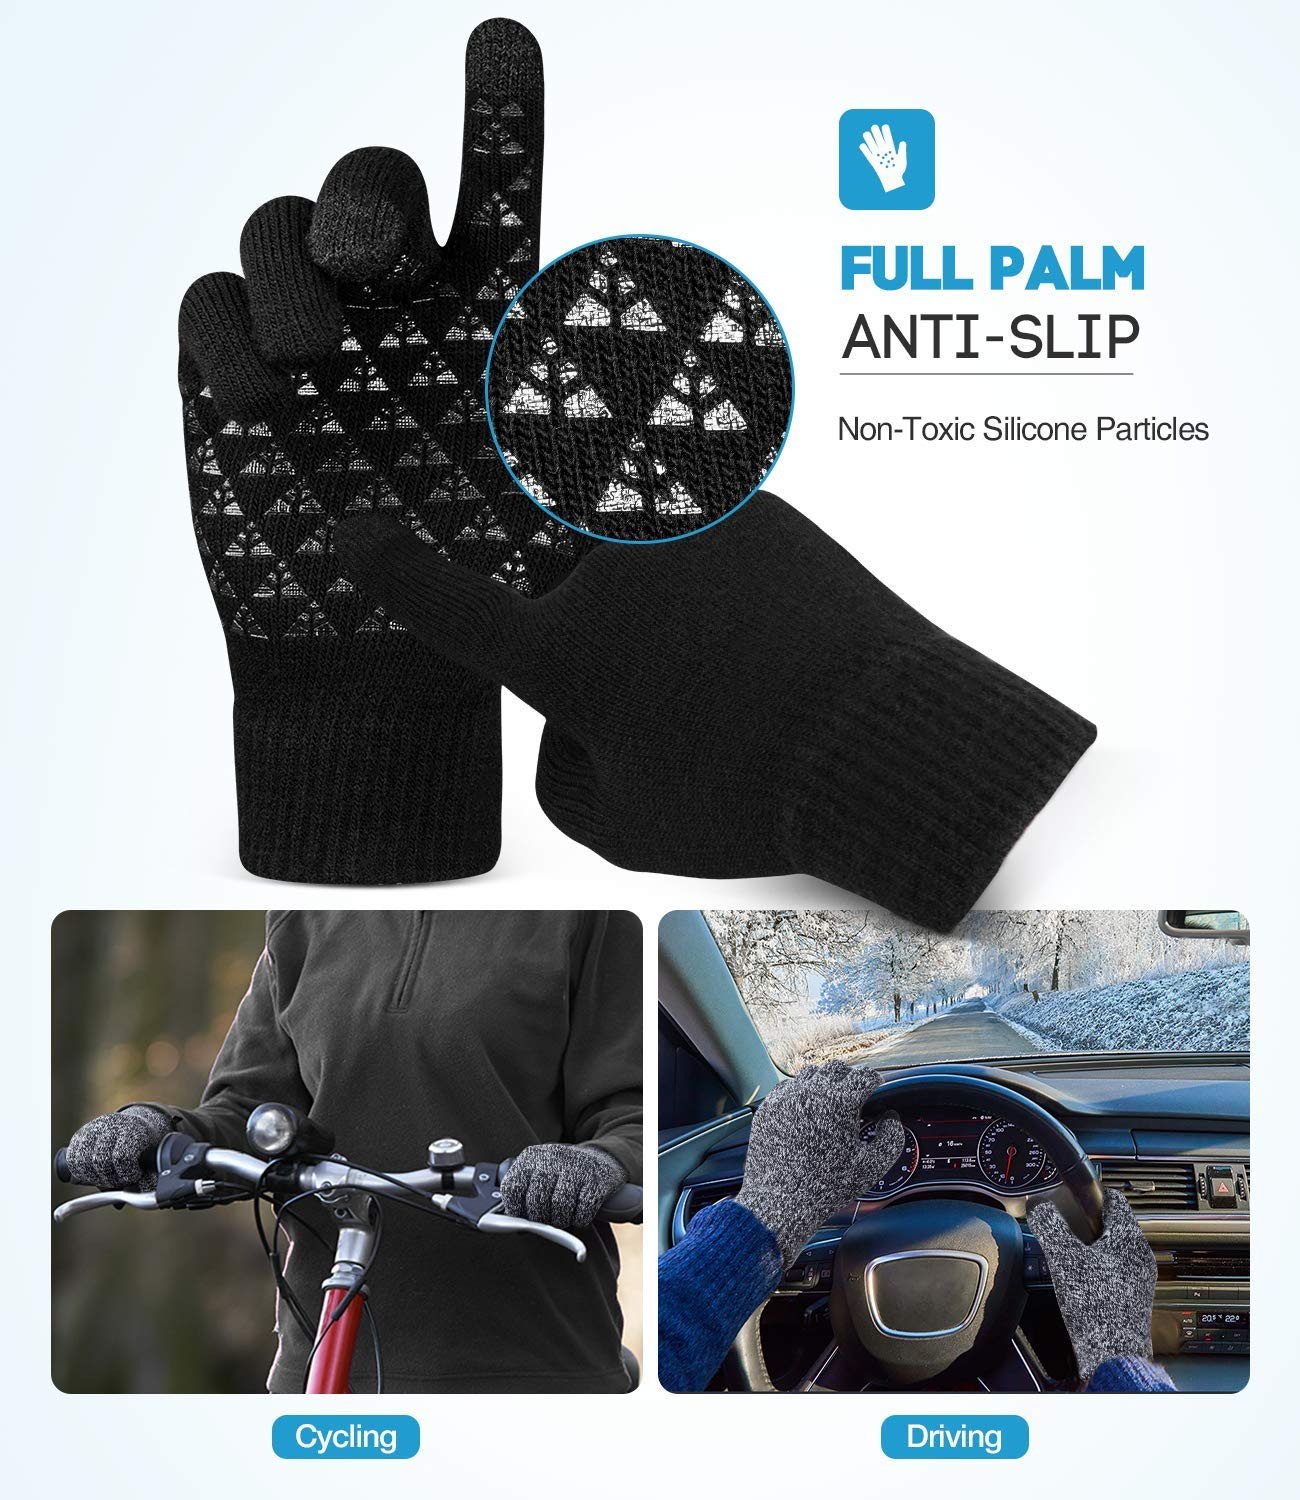 Use your cellphone while wearing winter gloves 🧤 ❄️